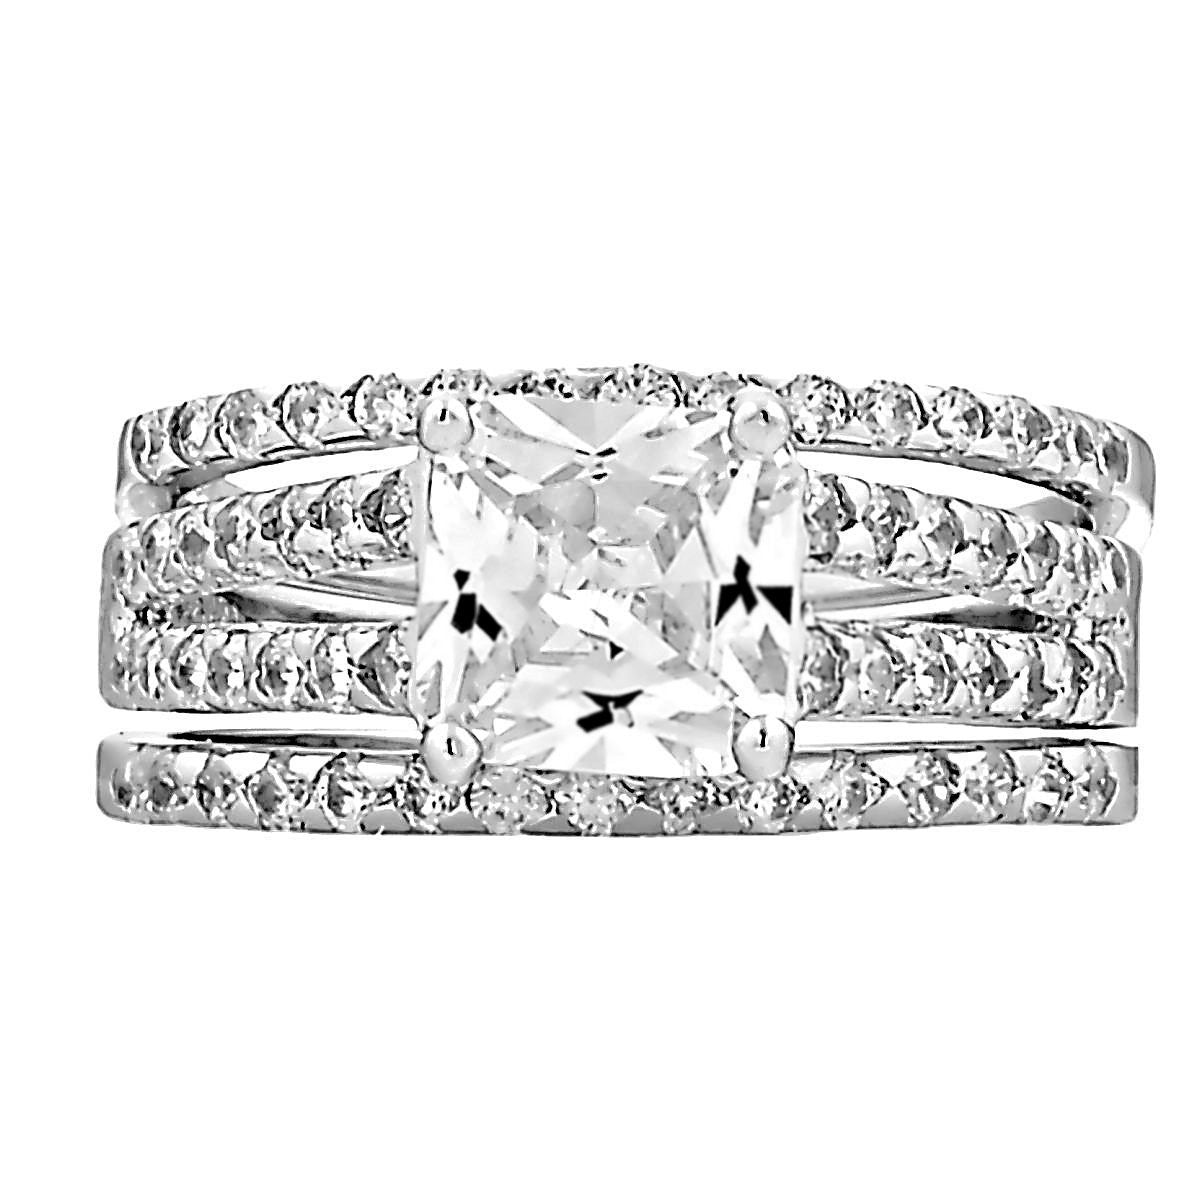 s princes women white sapphire princess rings silver wedding cut bands sterling